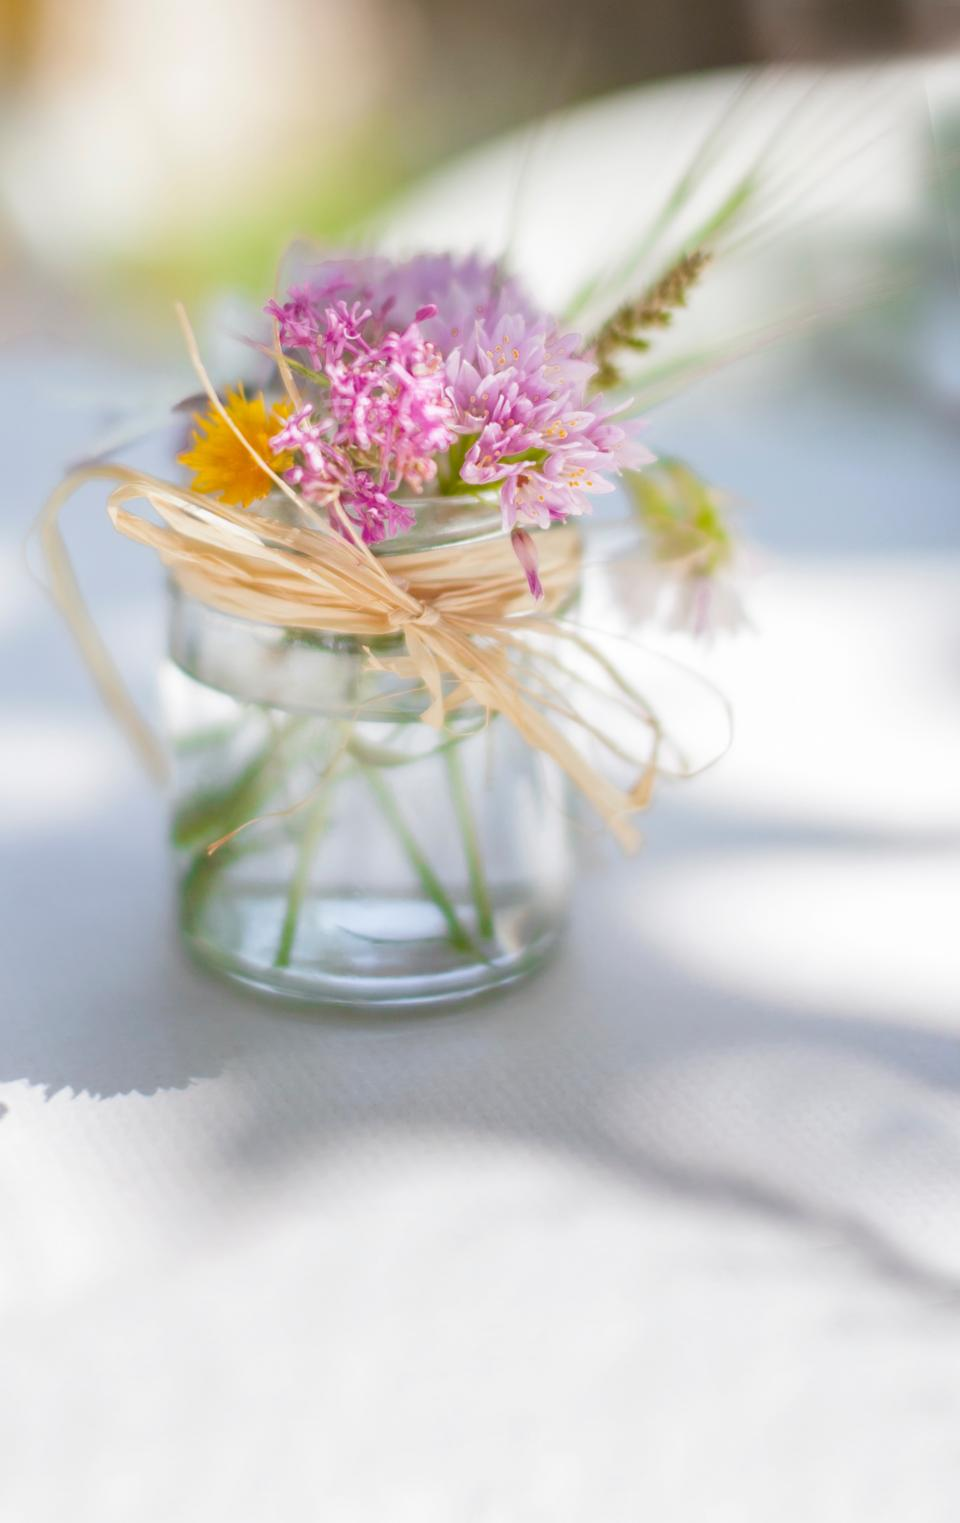 flowers glass water ribbon bokeh blur petals. lavender white nature